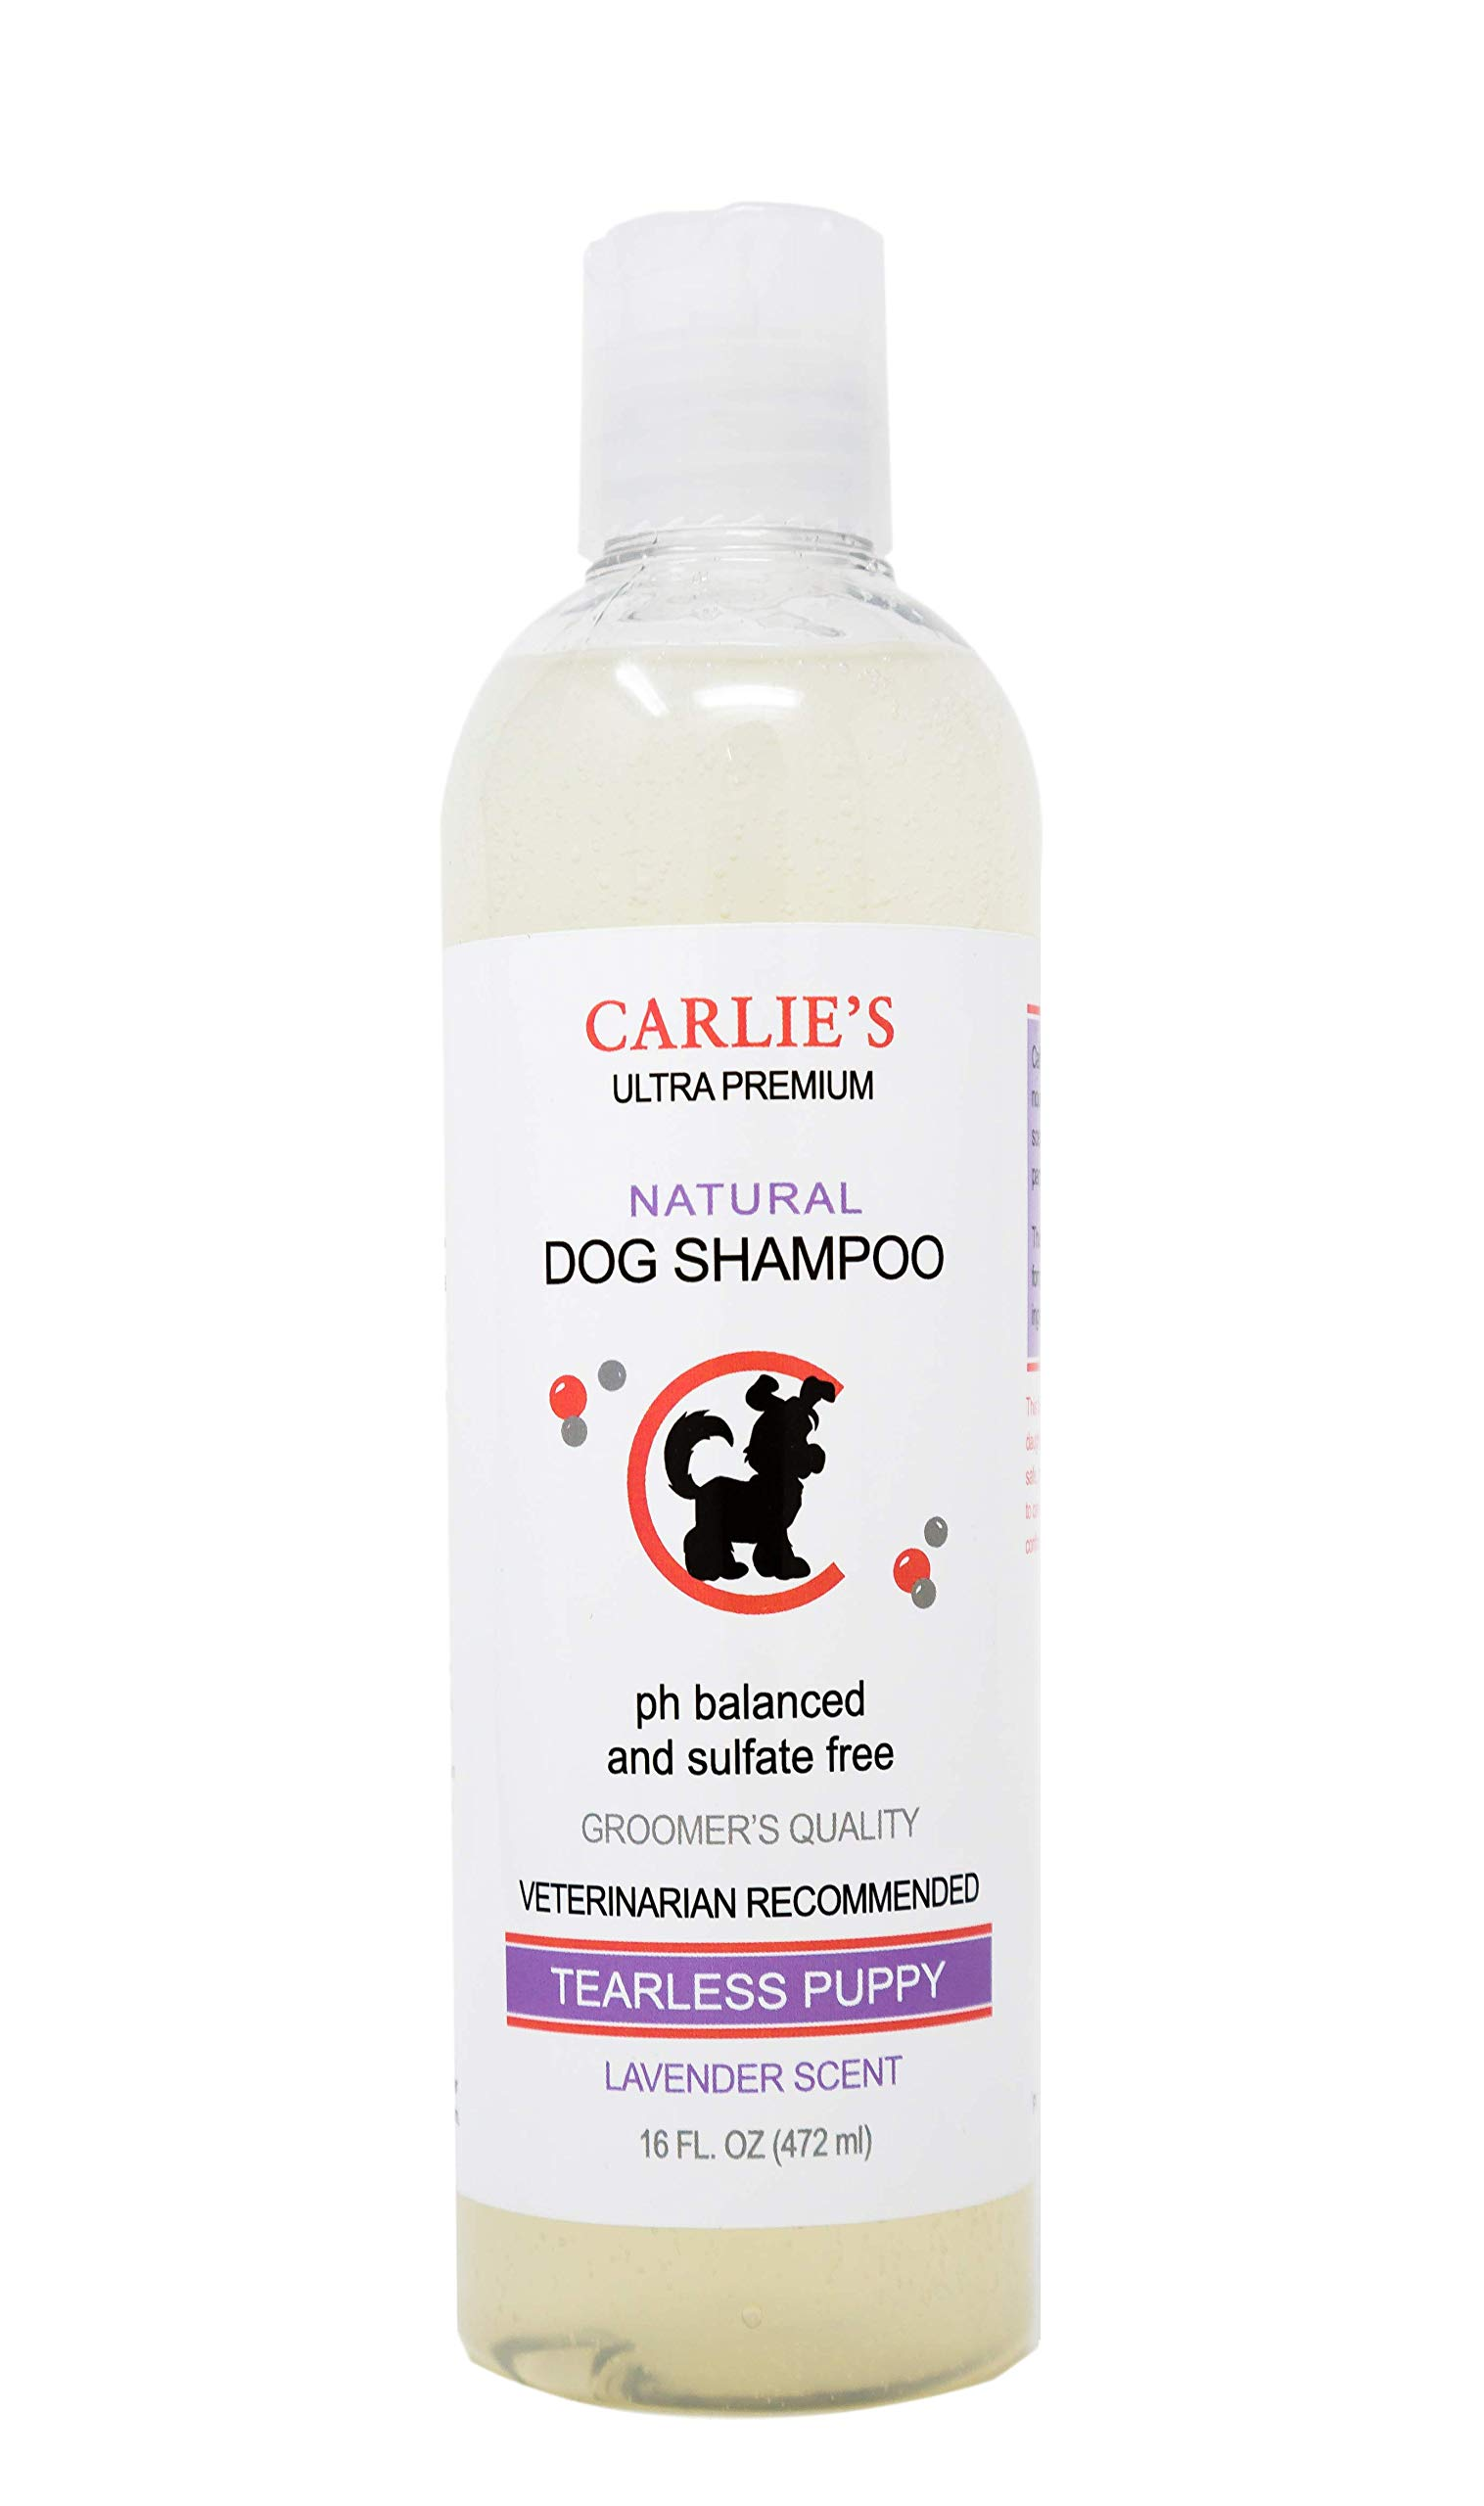 Scoochie Pets Dog Shampoo & Conditioner| Skin Soothing, Ph Balanced| Deodorizing, Moisturizing & Detangling Action| Hypoallergenic & Veterinarian Recommended Pet Grooming (Lavender - Puppy Special)